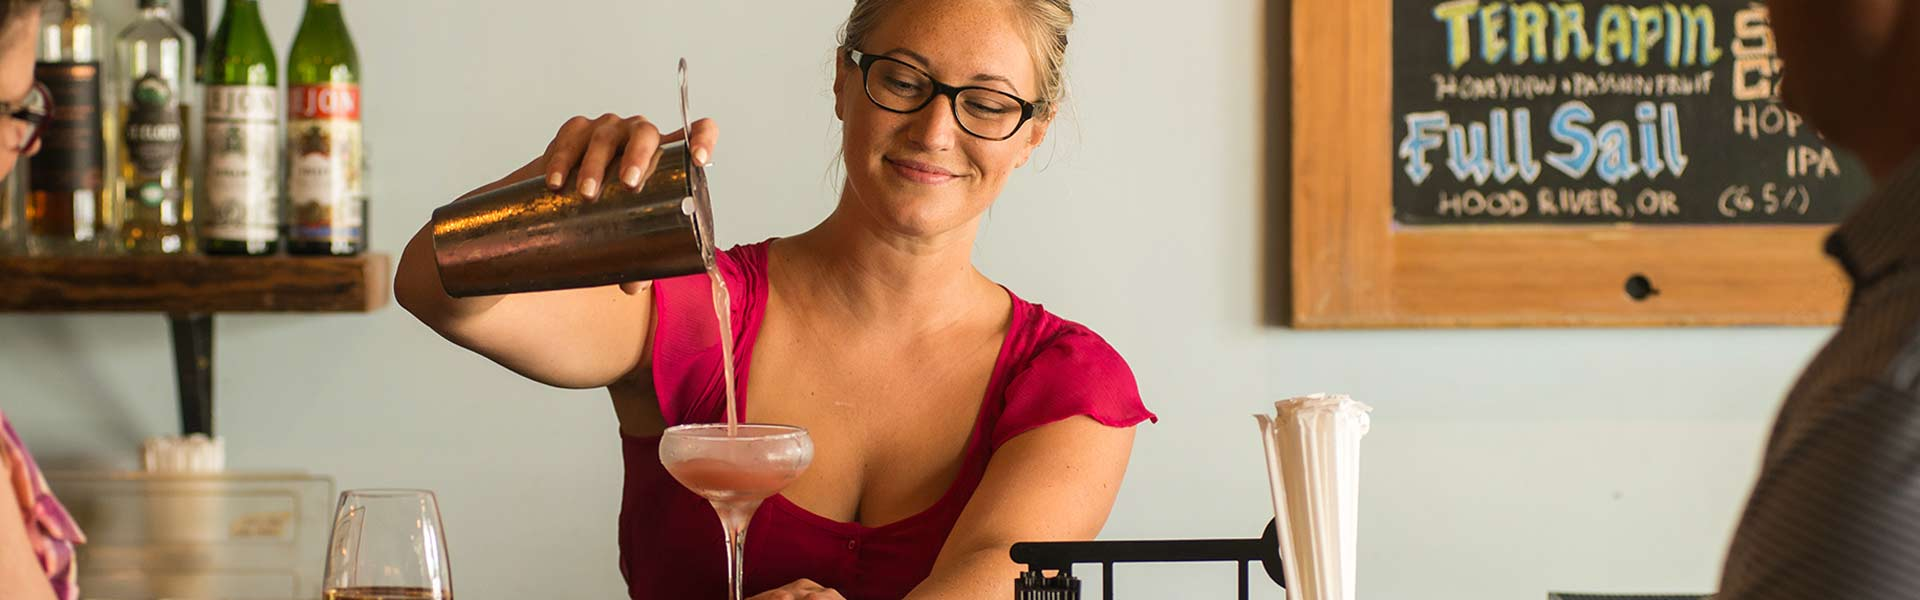 Knowledgeable Bartenders and Specialty Cocktails at The Pine Restaurant and Bar in Athens